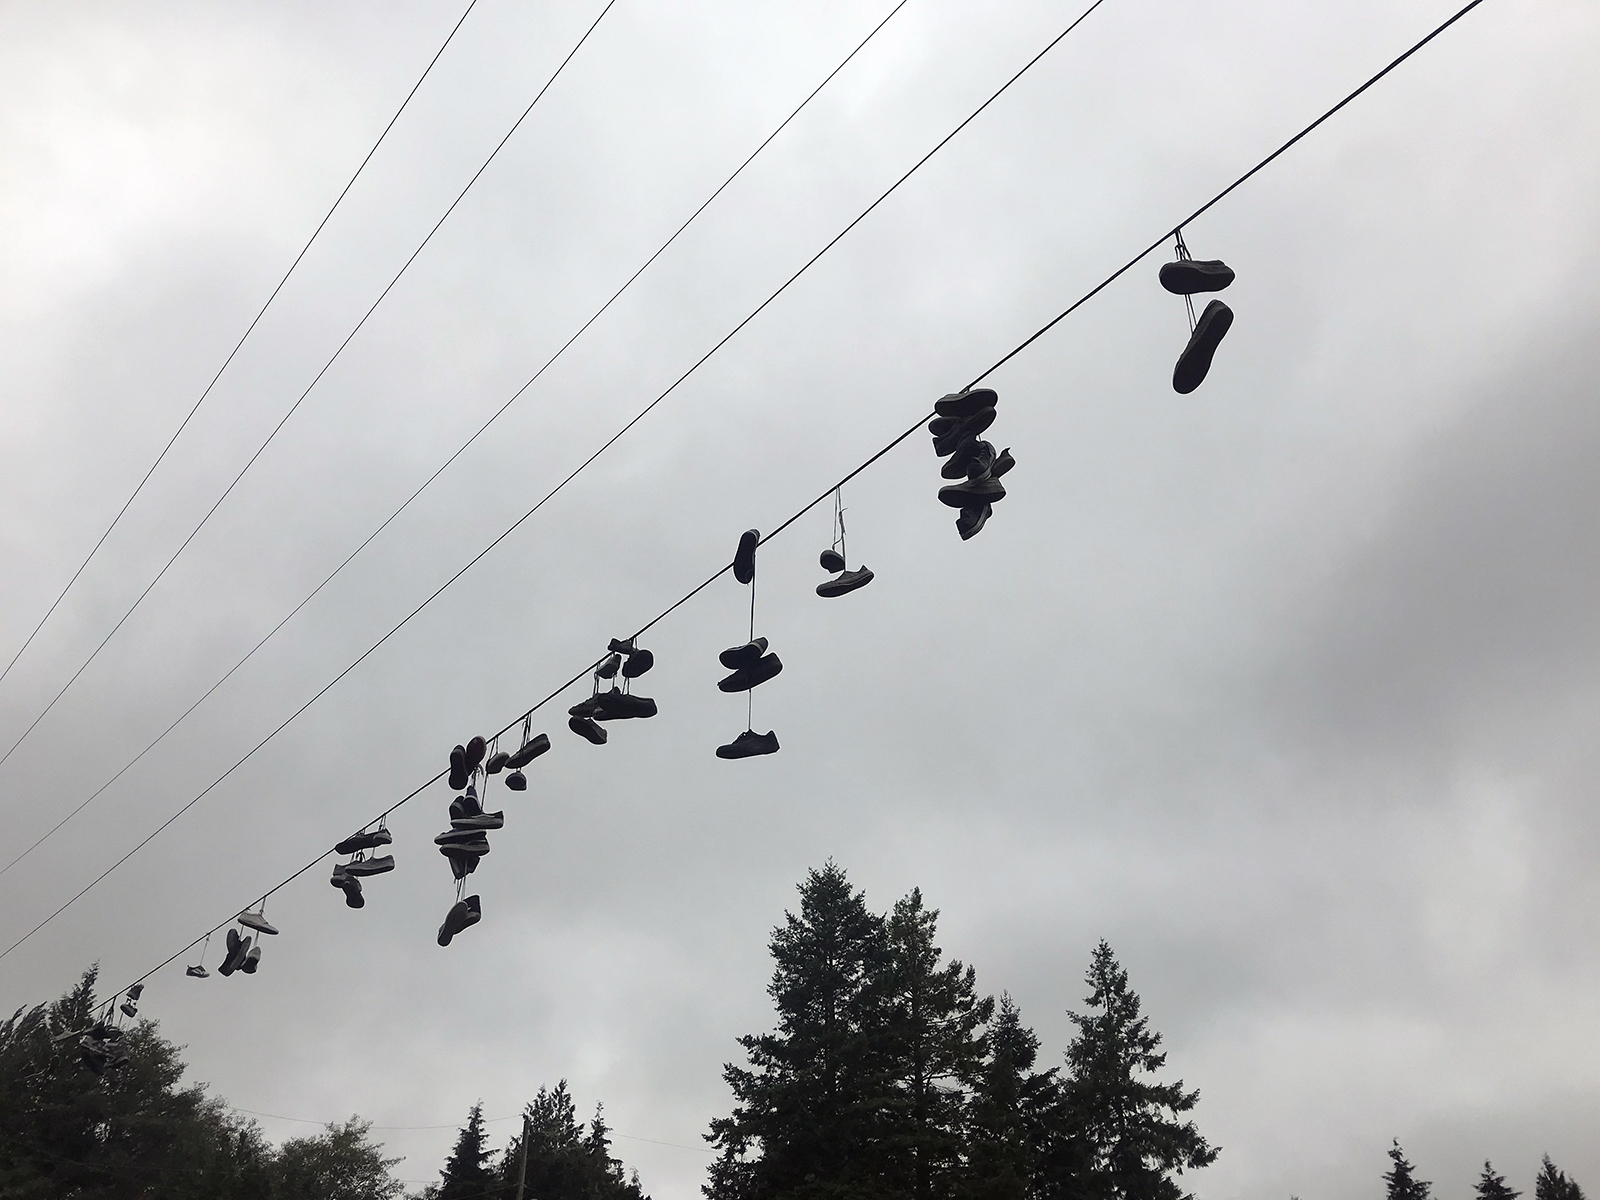 Shoes hanging from a wire, Tofino, Vancouver Island 2019 - photo by Tanya Clarke